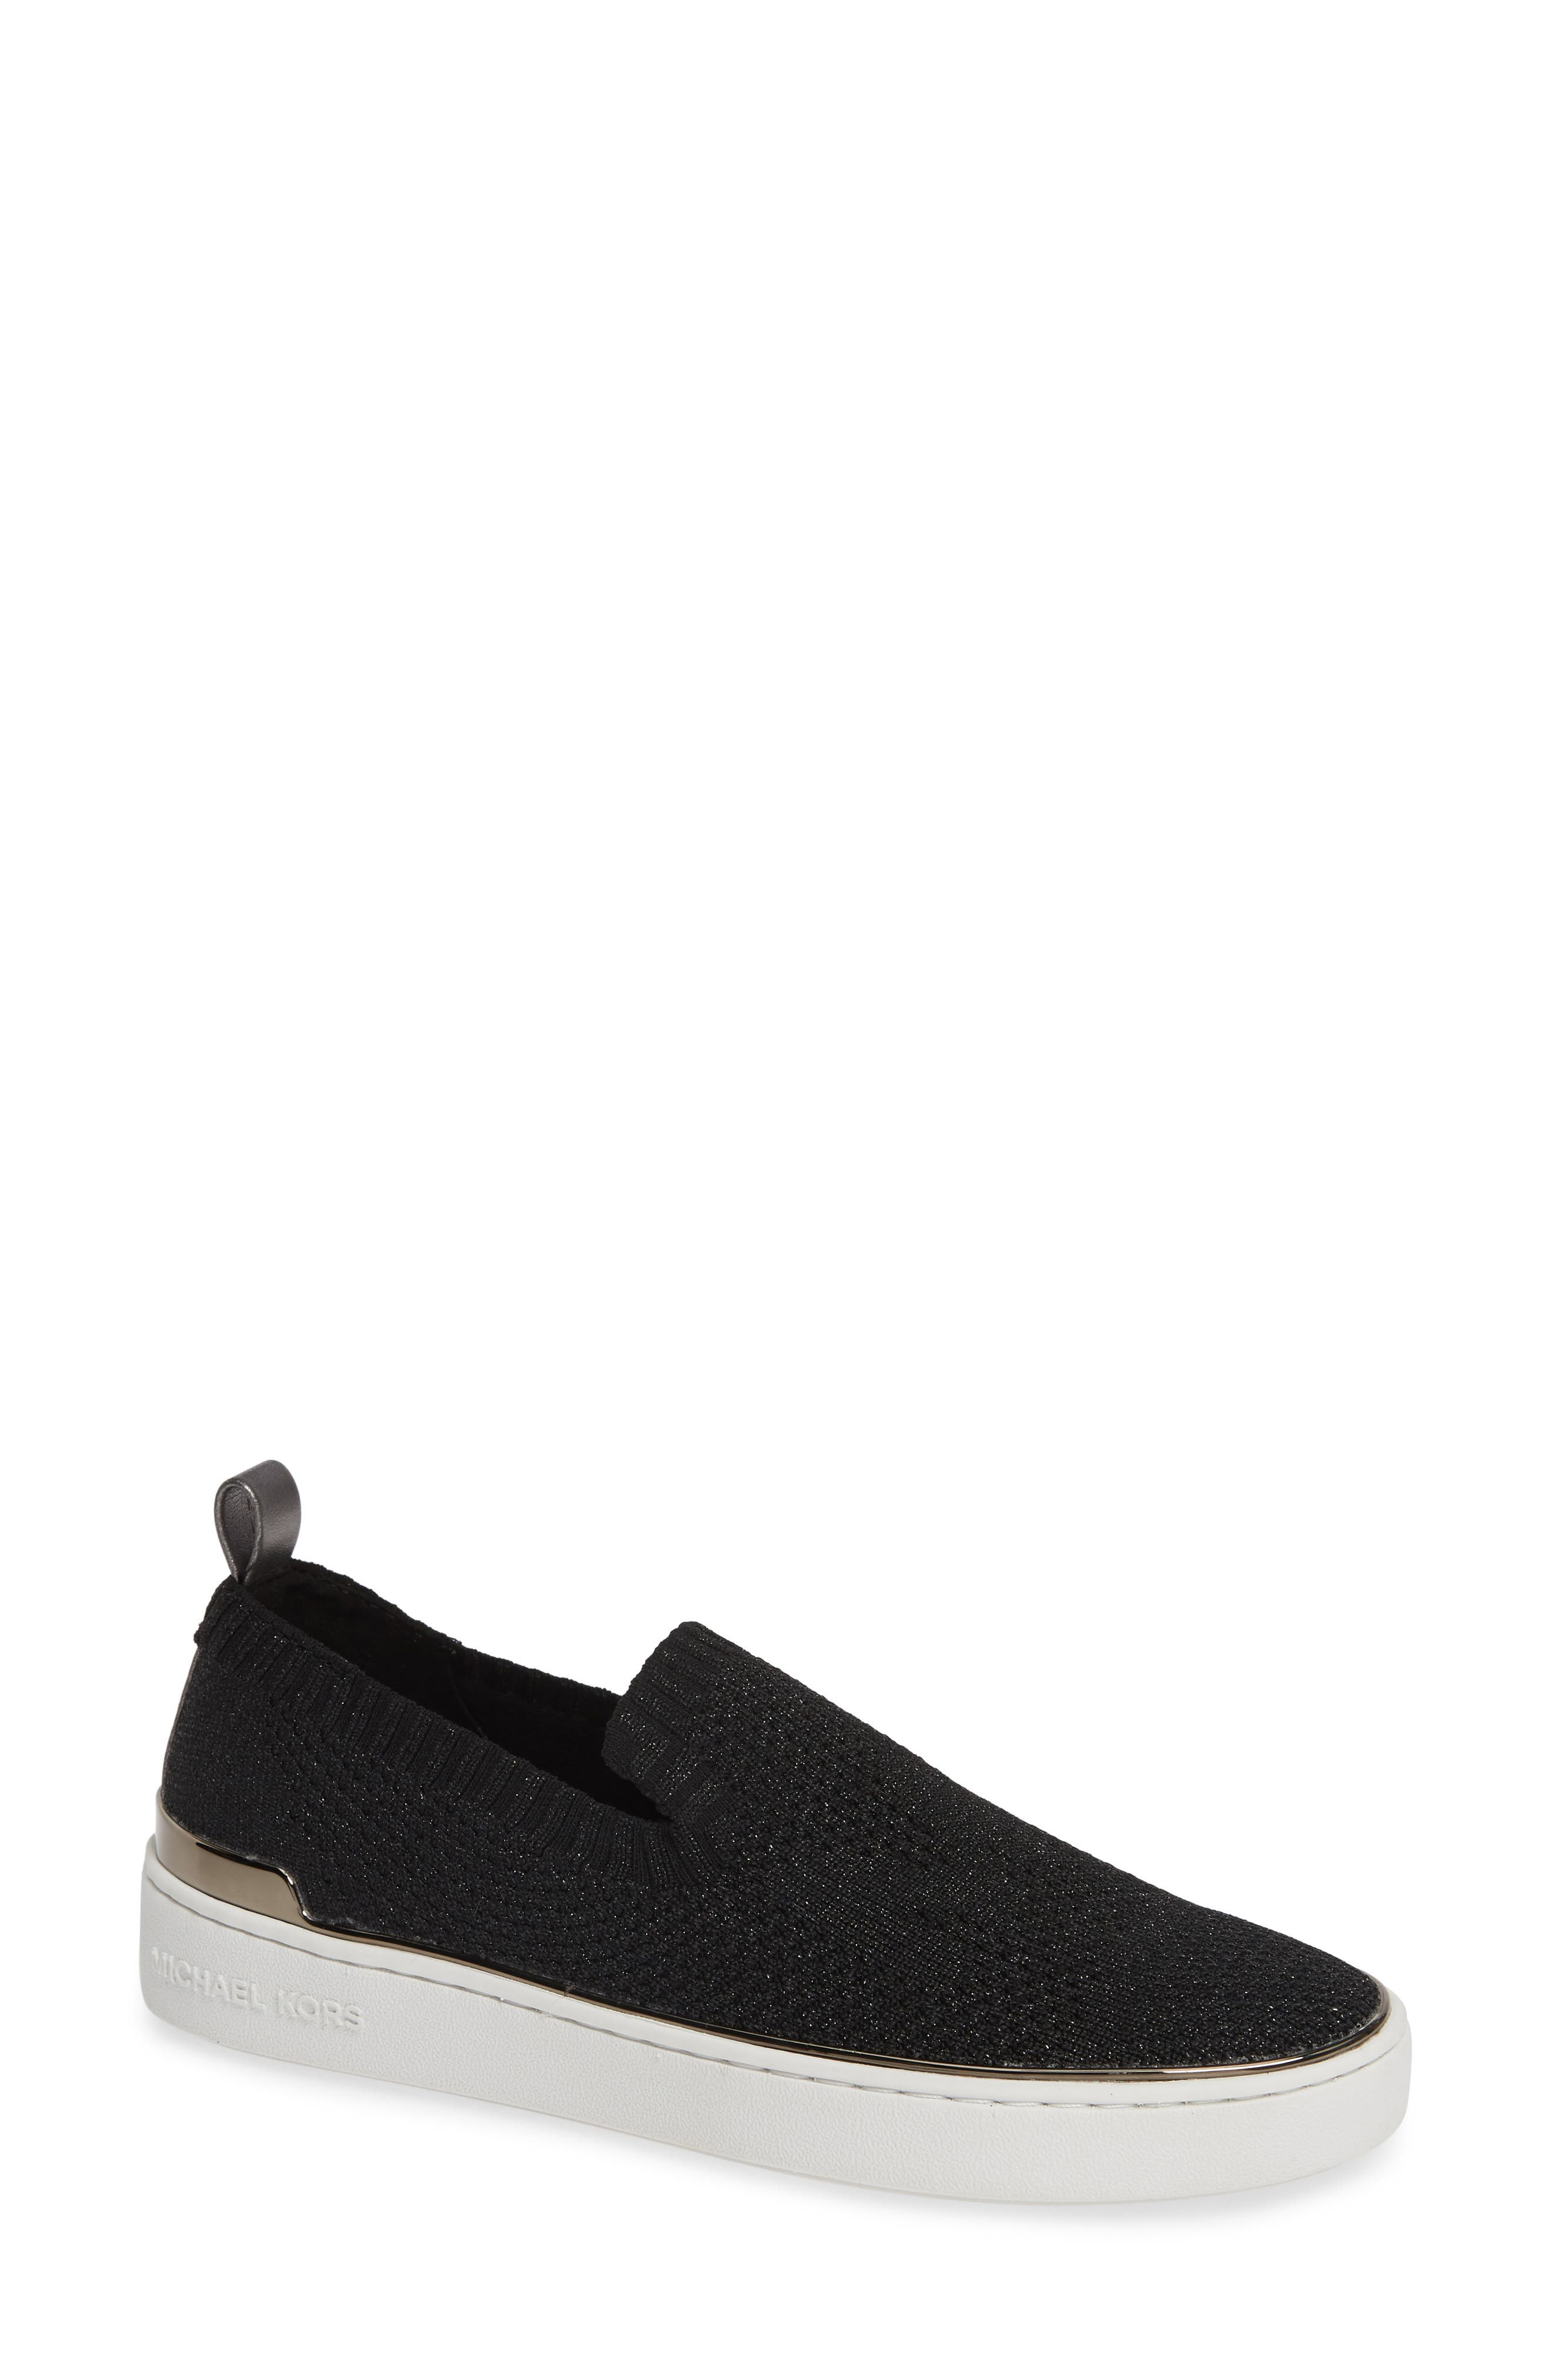 Women'S Skyler Knit Slip-On Sneakers in Gunmetal Fabric